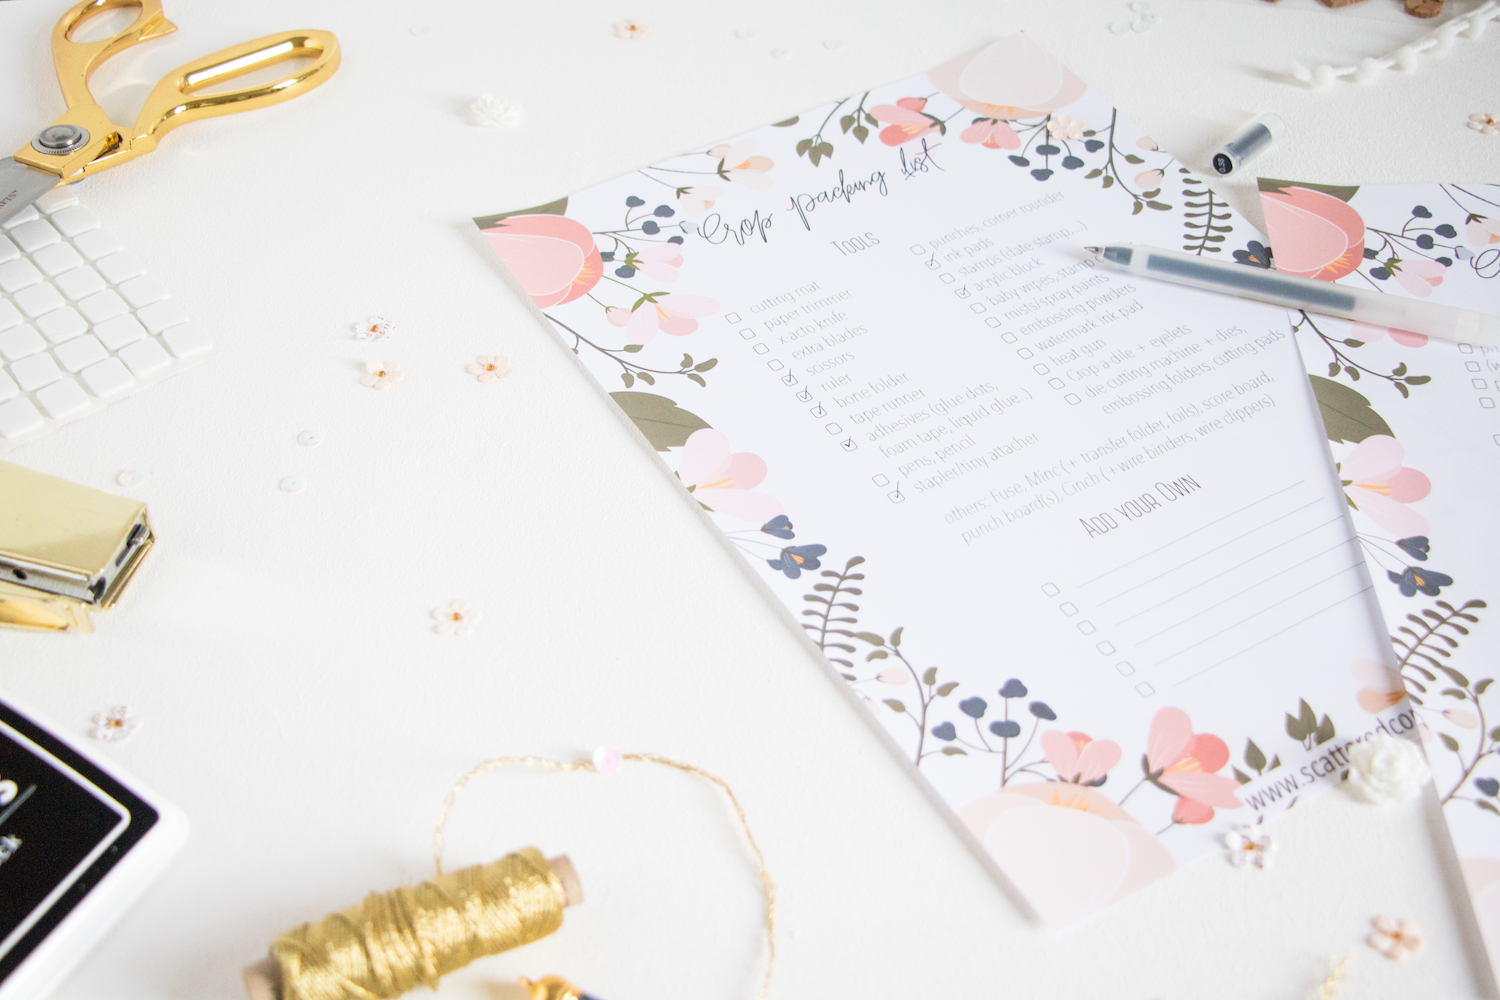 Crop Packing List/Checklist by ScatteredConfetti. // #scrapbooking #papercrafting #memorykeeping